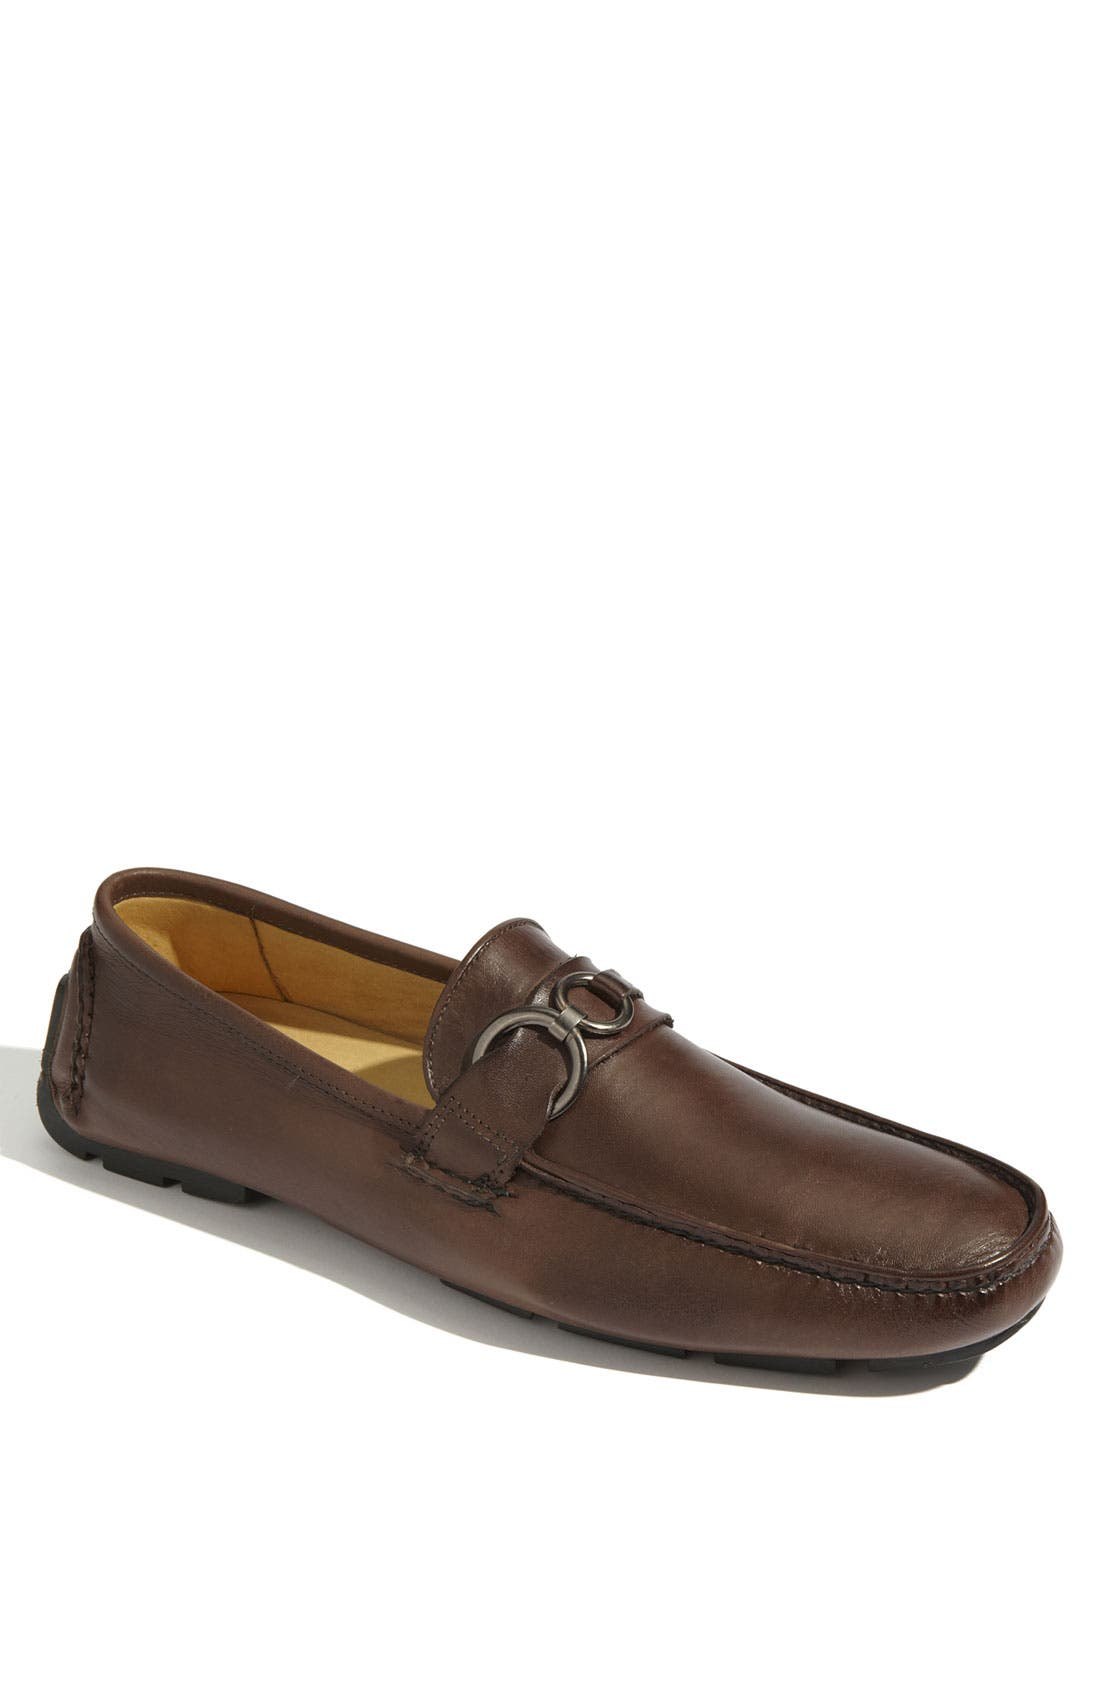 Main Image - Bacco Bucci 'Marcelo' Driving Loafer